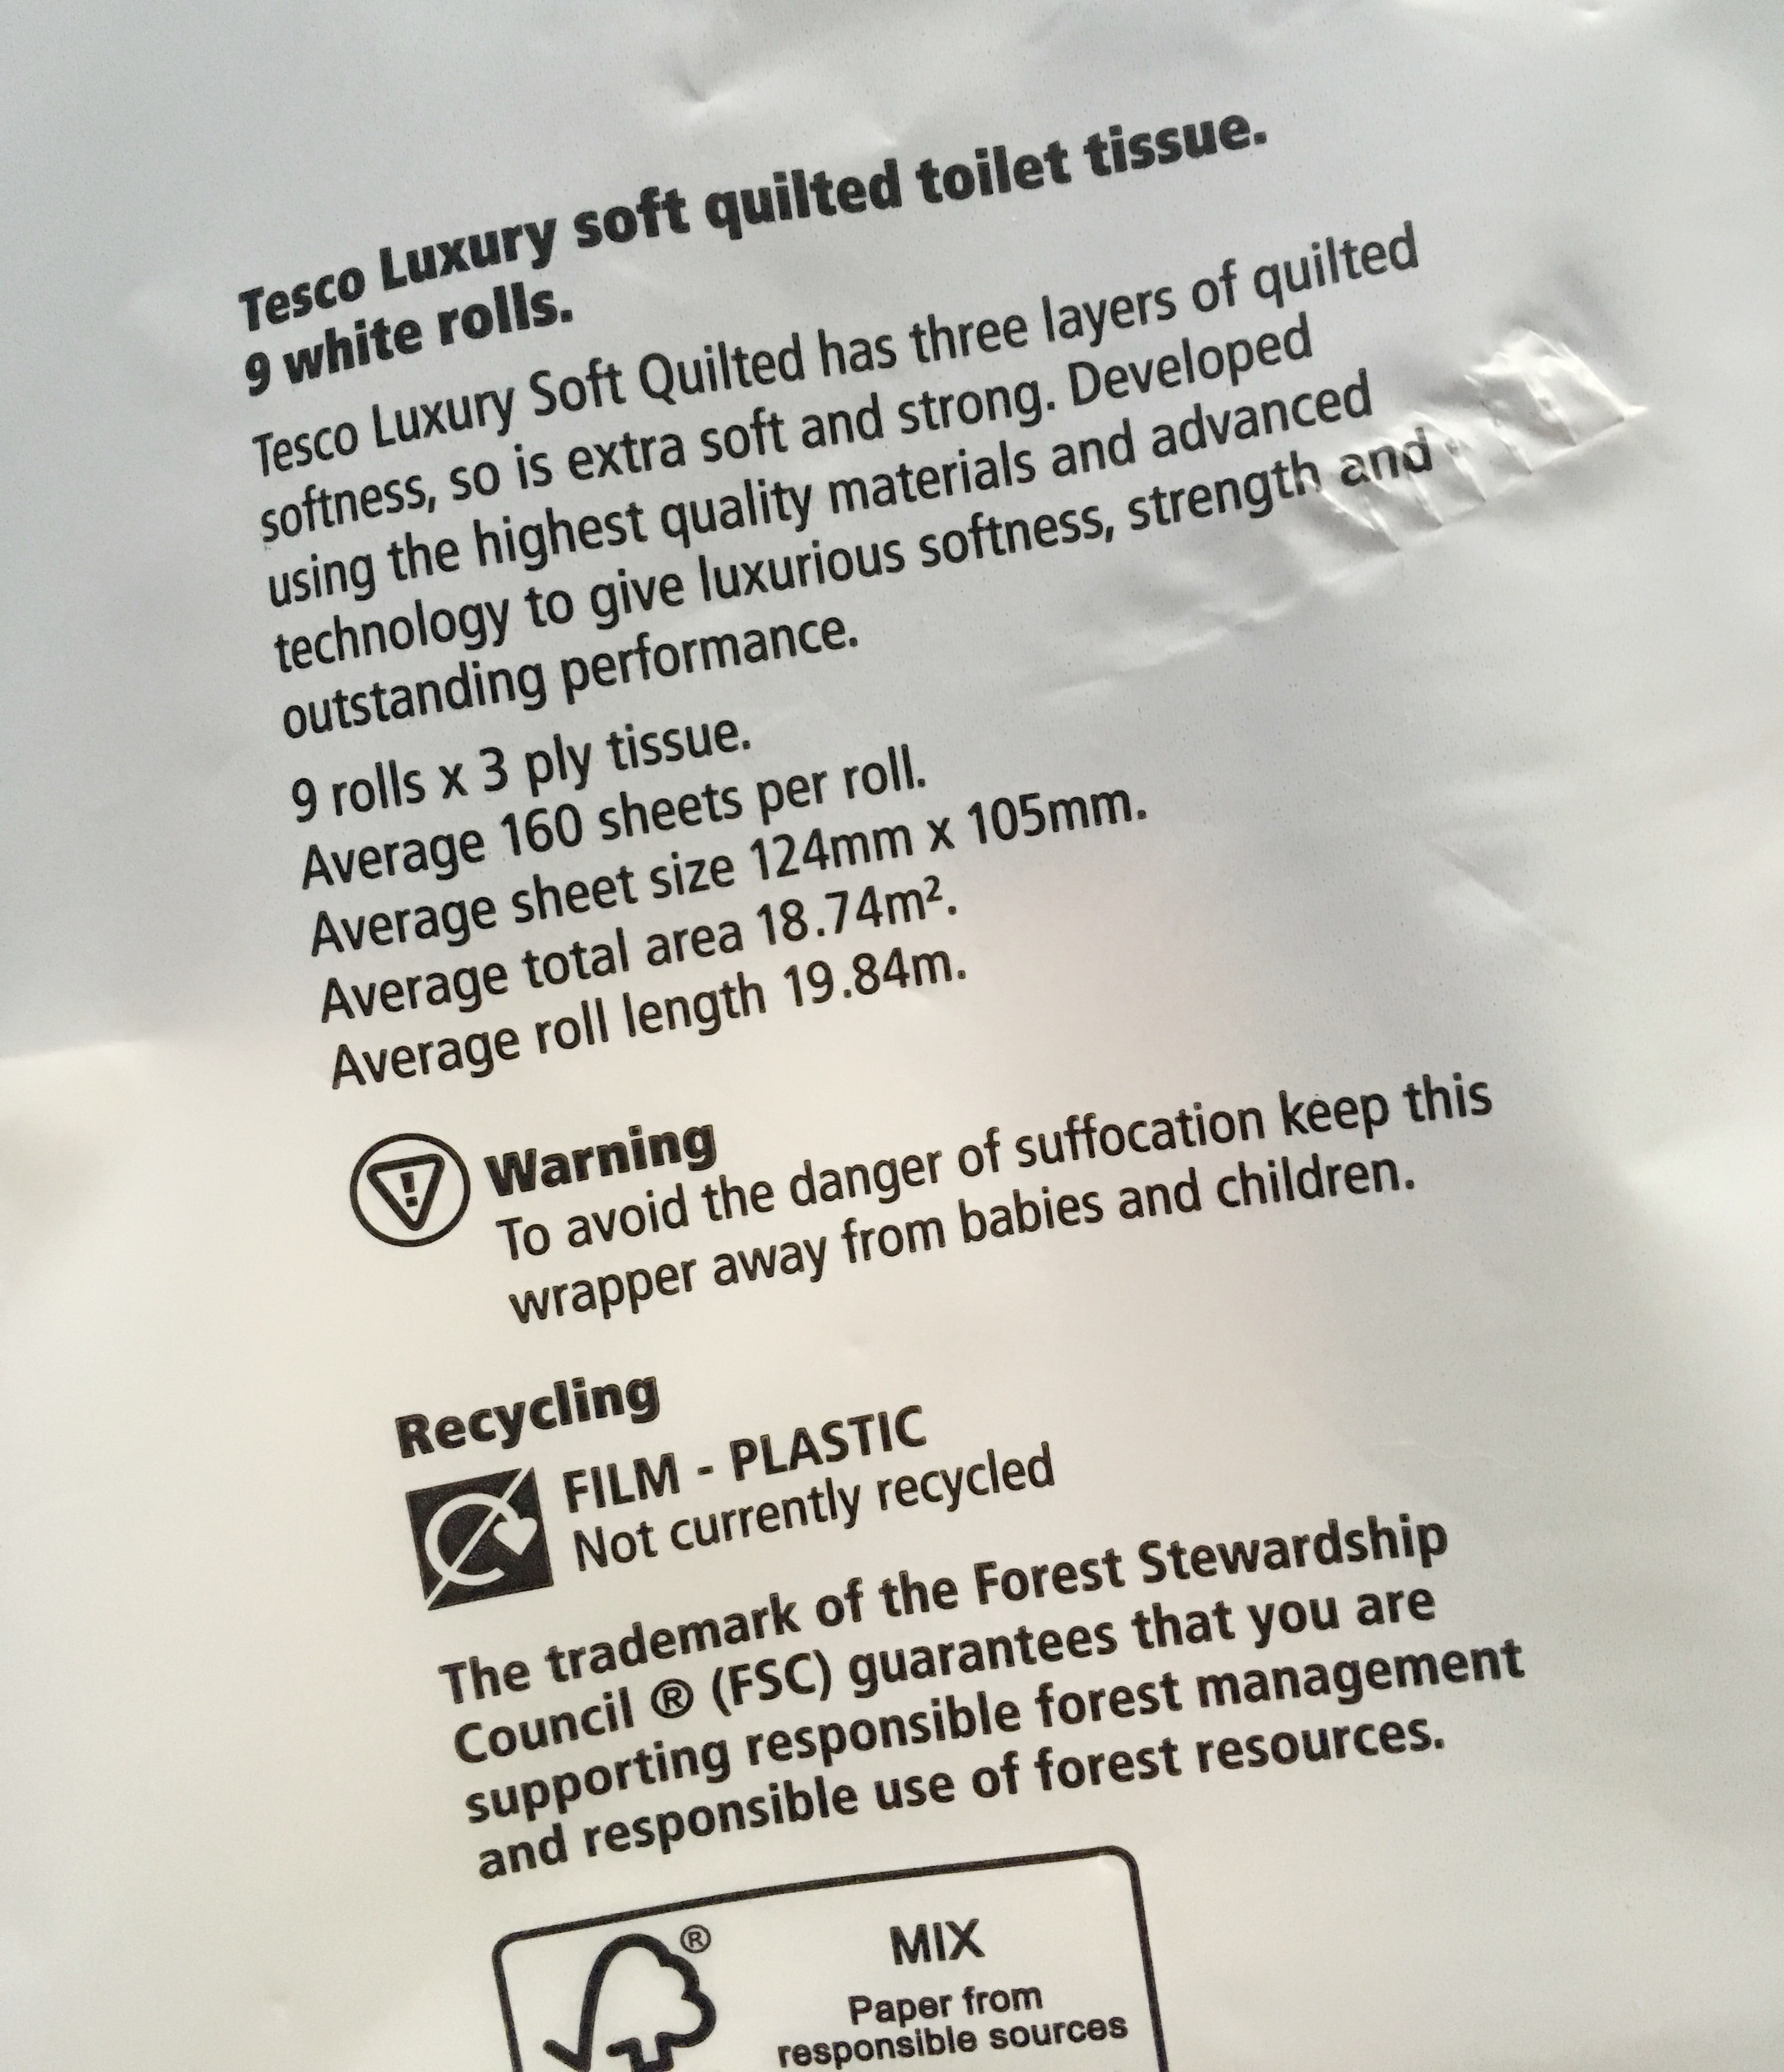 Toilet roll review by Bridget Crohns. This time she's reviewing Tesco Luxury Soft toilet paper